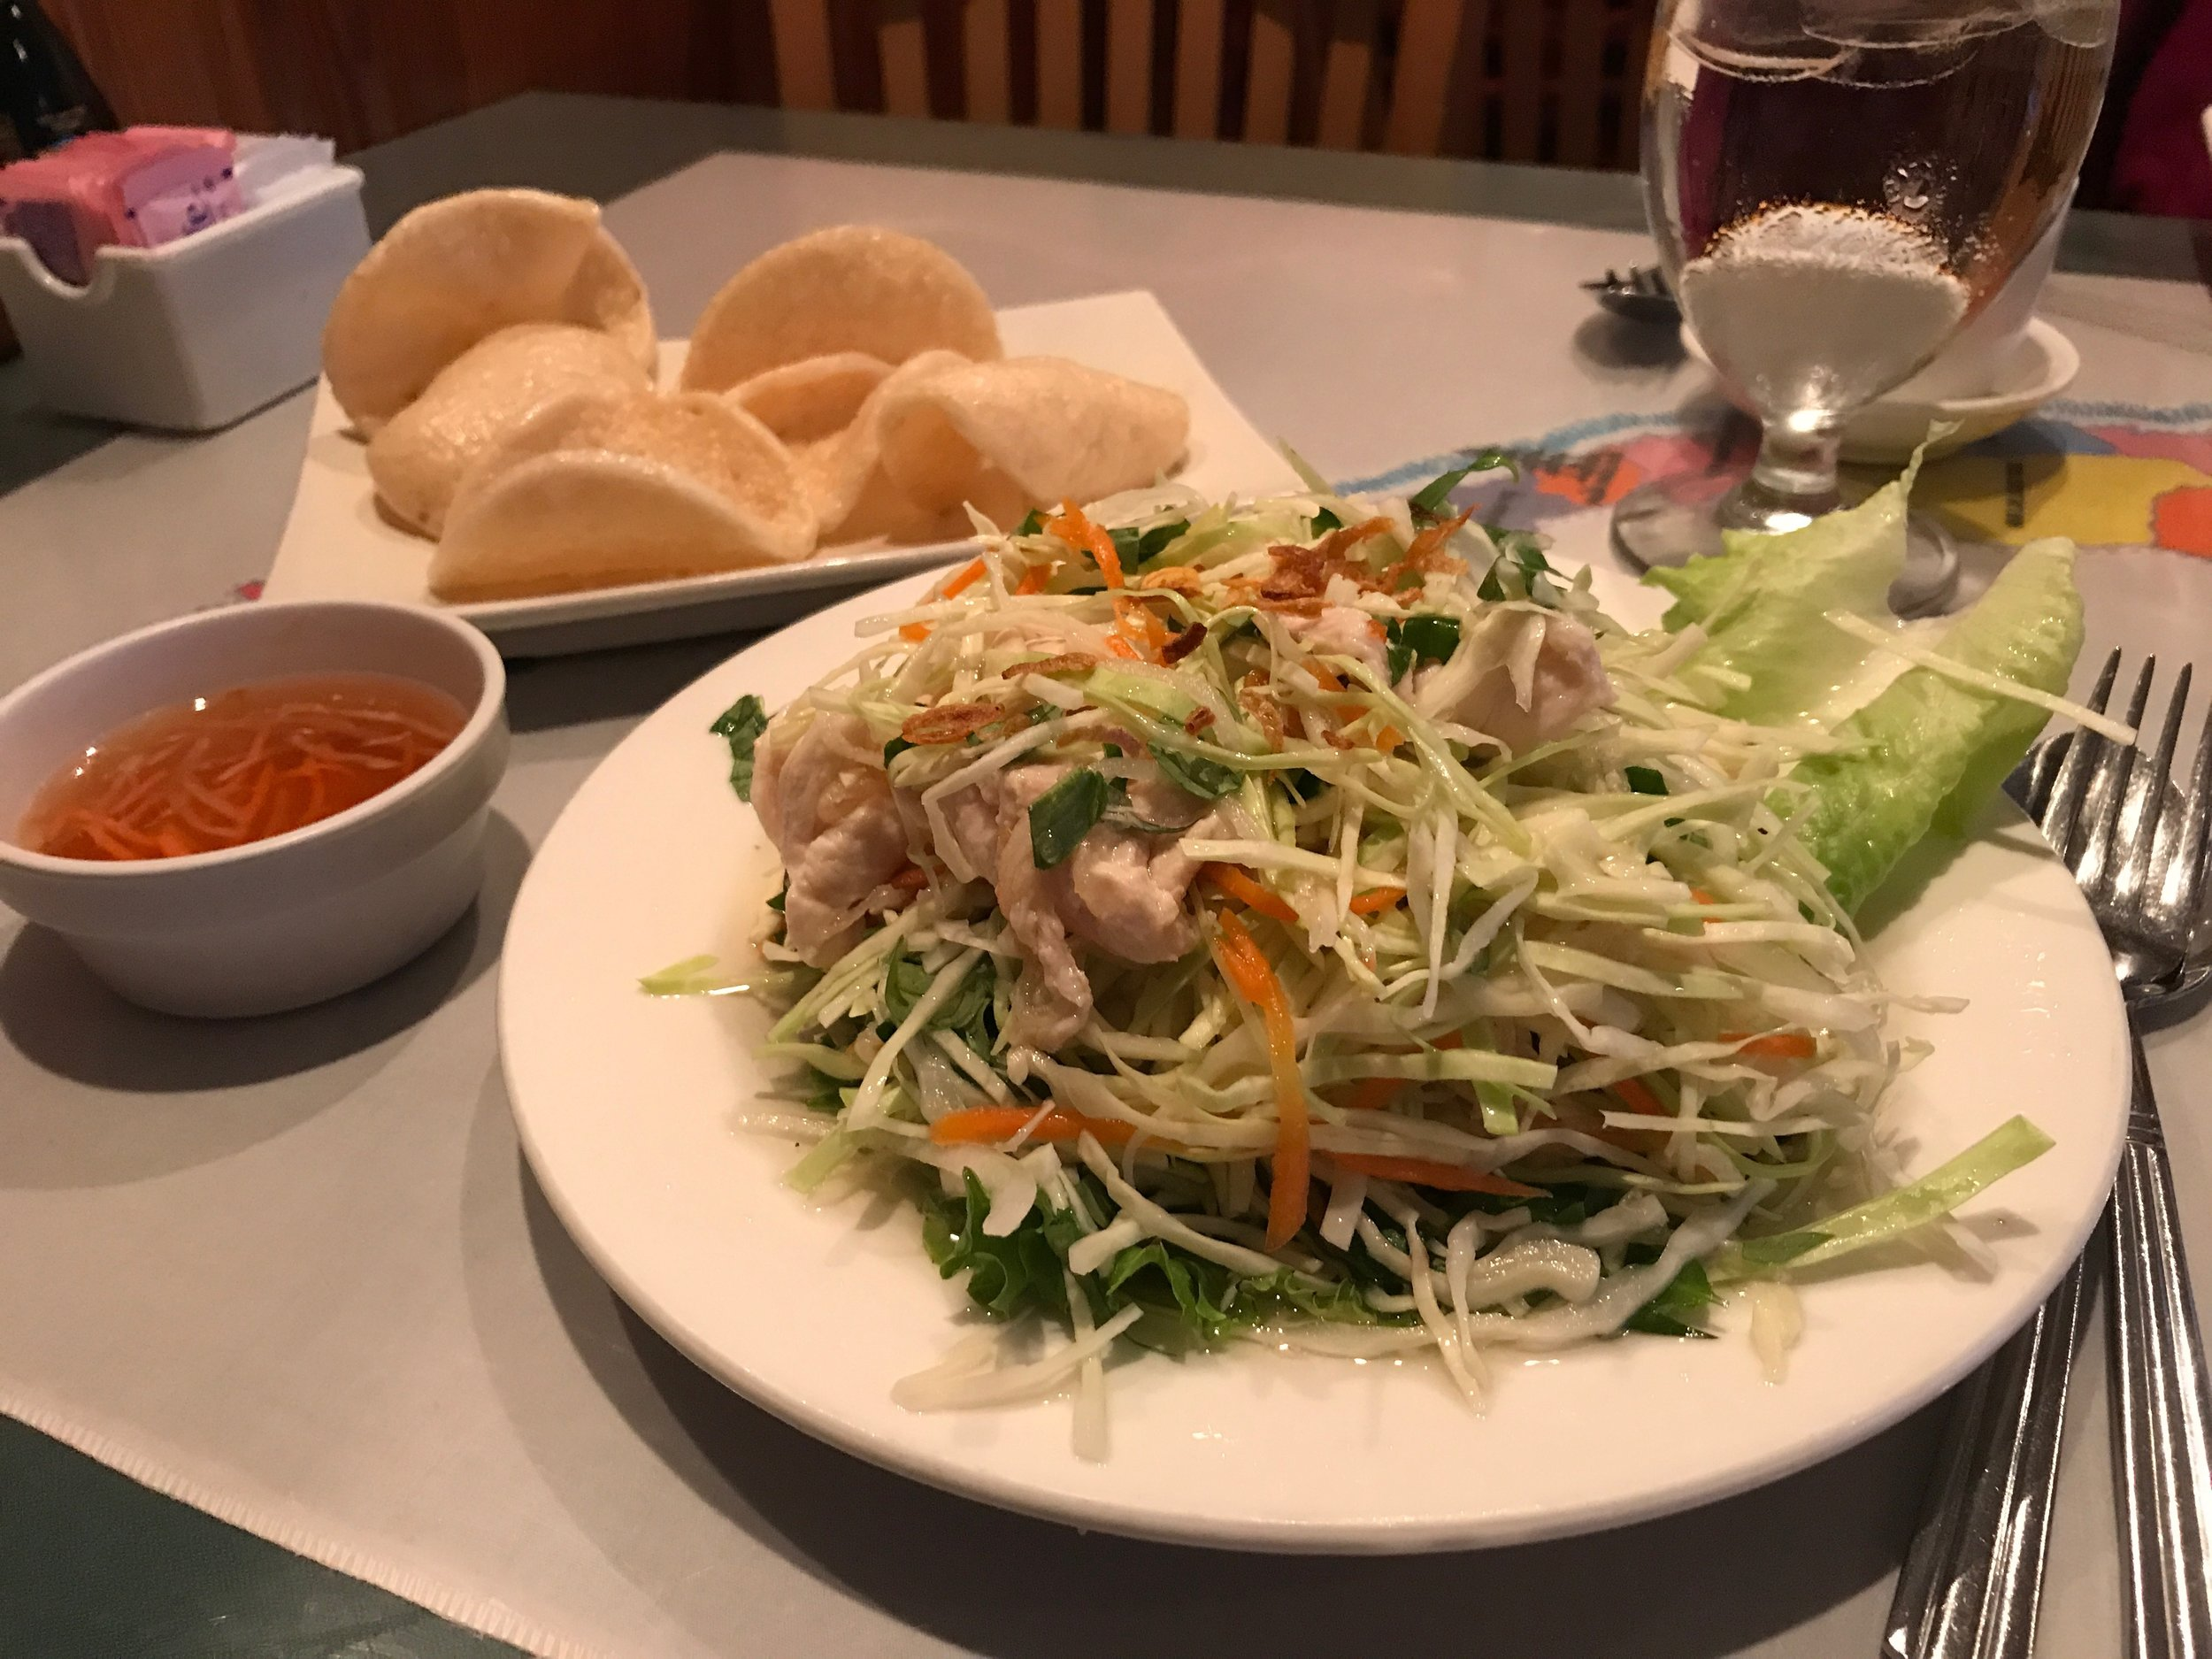 16. Lang Van - Lang Van is Charlotte's best Vietnamese restaurant. The service here is incredible. We've gone six months without eating here and they still remember our orders. It's pretty amazing. Oh, and the food is incredible, too.